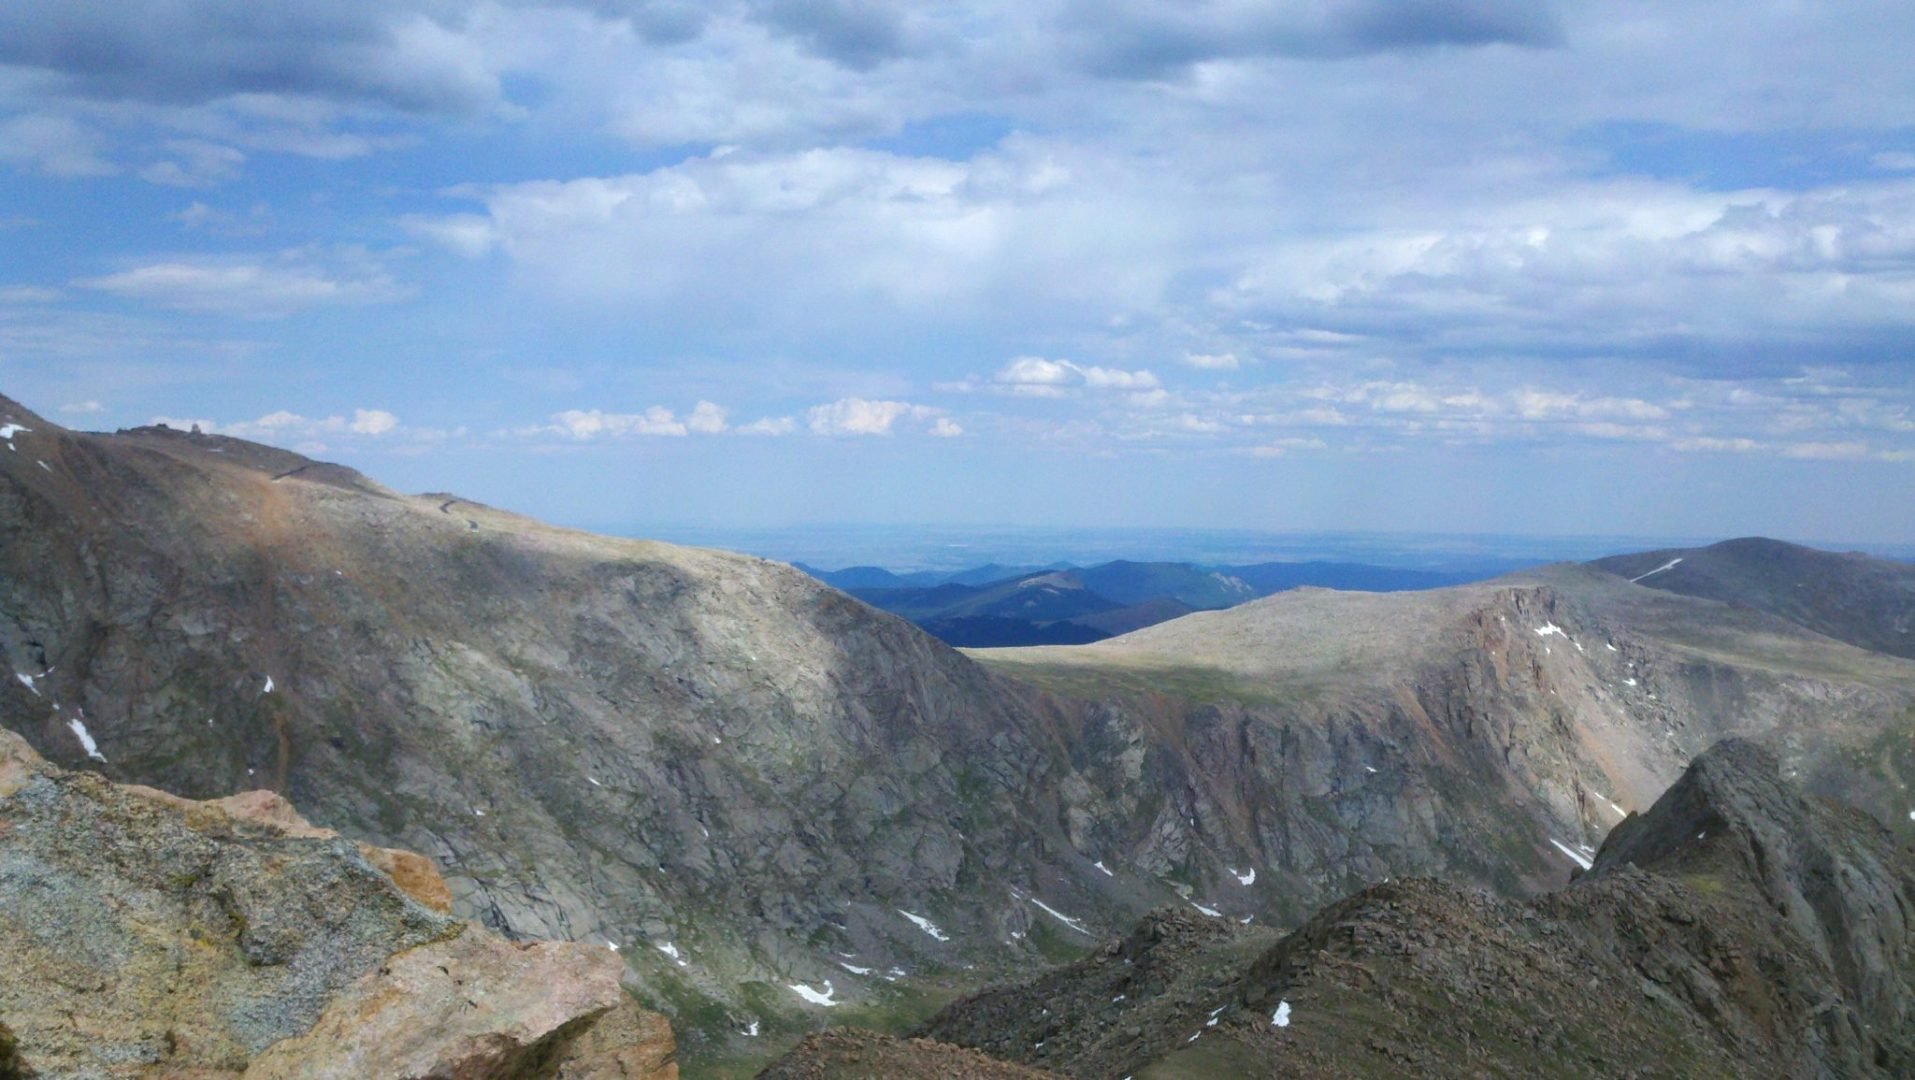 Another view of Mt Evans